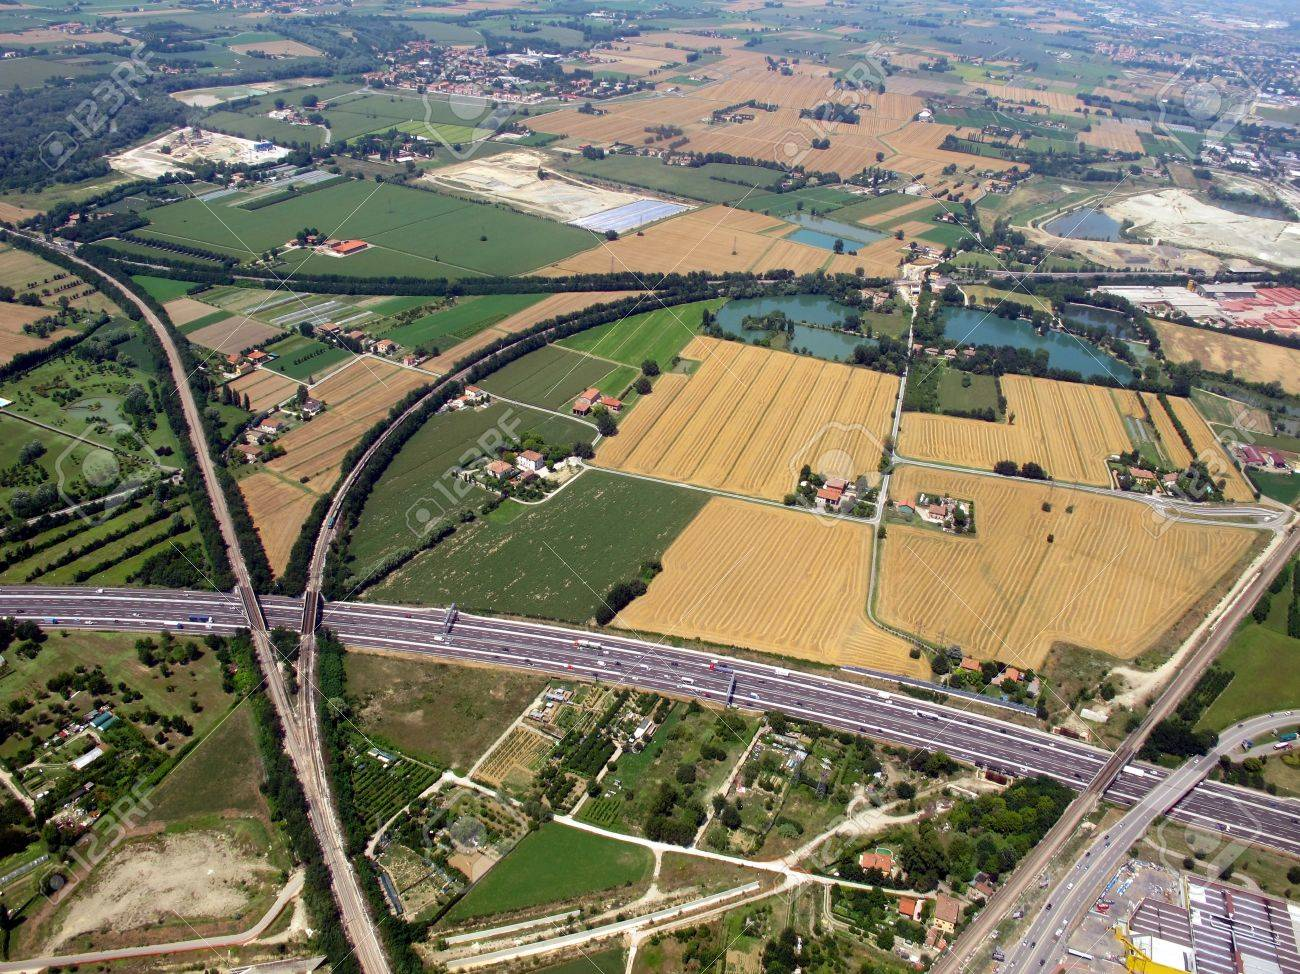 Aerial view of the city and of Freeway Stock Photo - 10869198